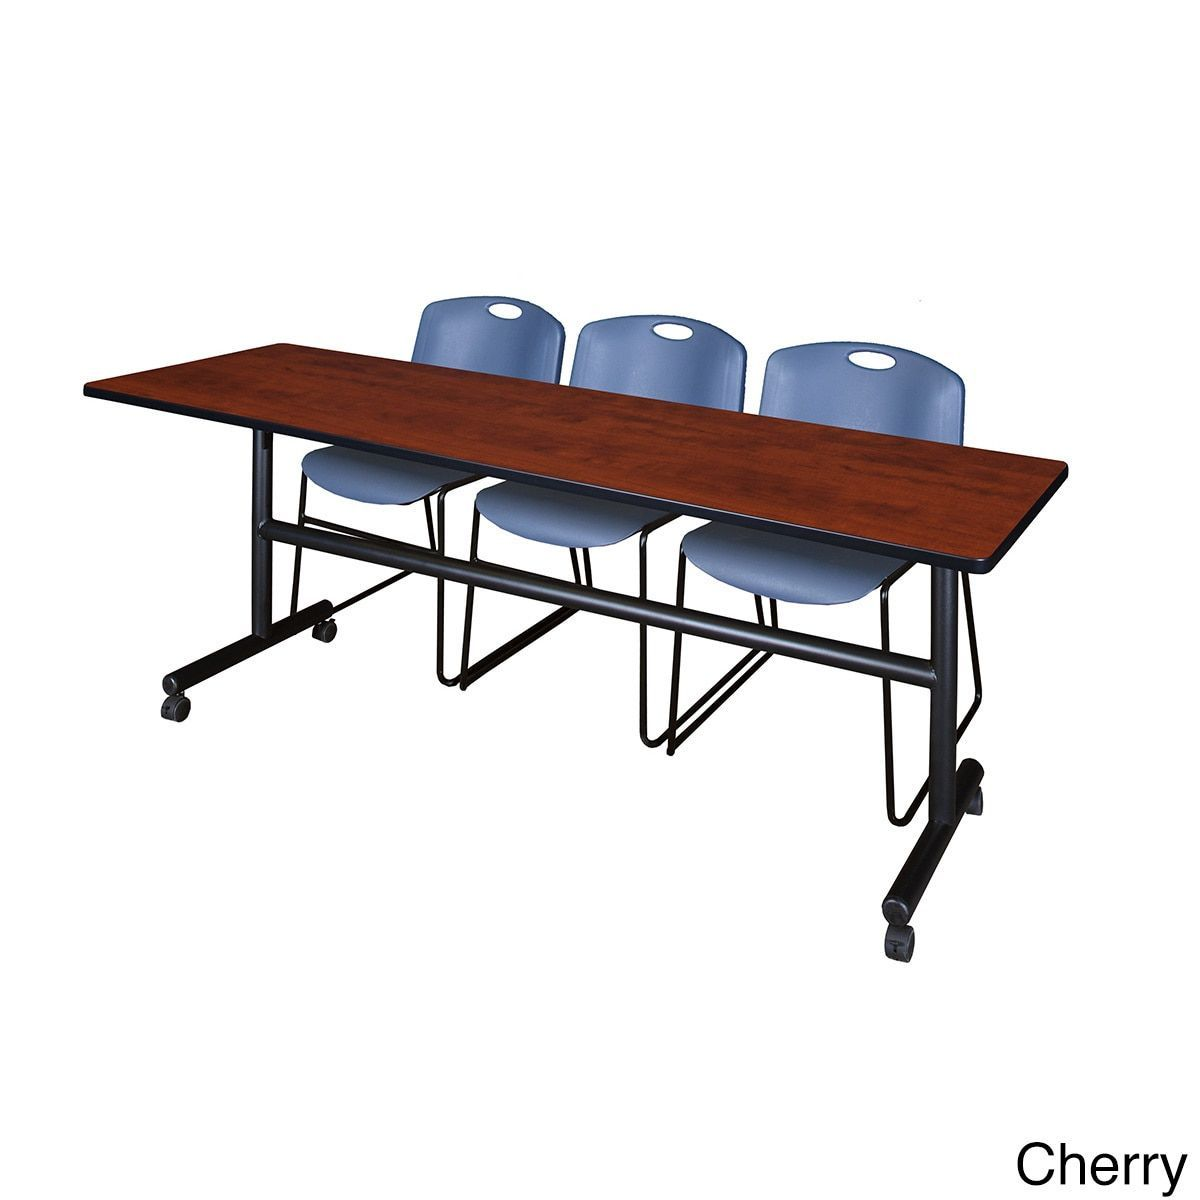 Office folding tables regency seating kobe blue fliptop inch mobile training table and